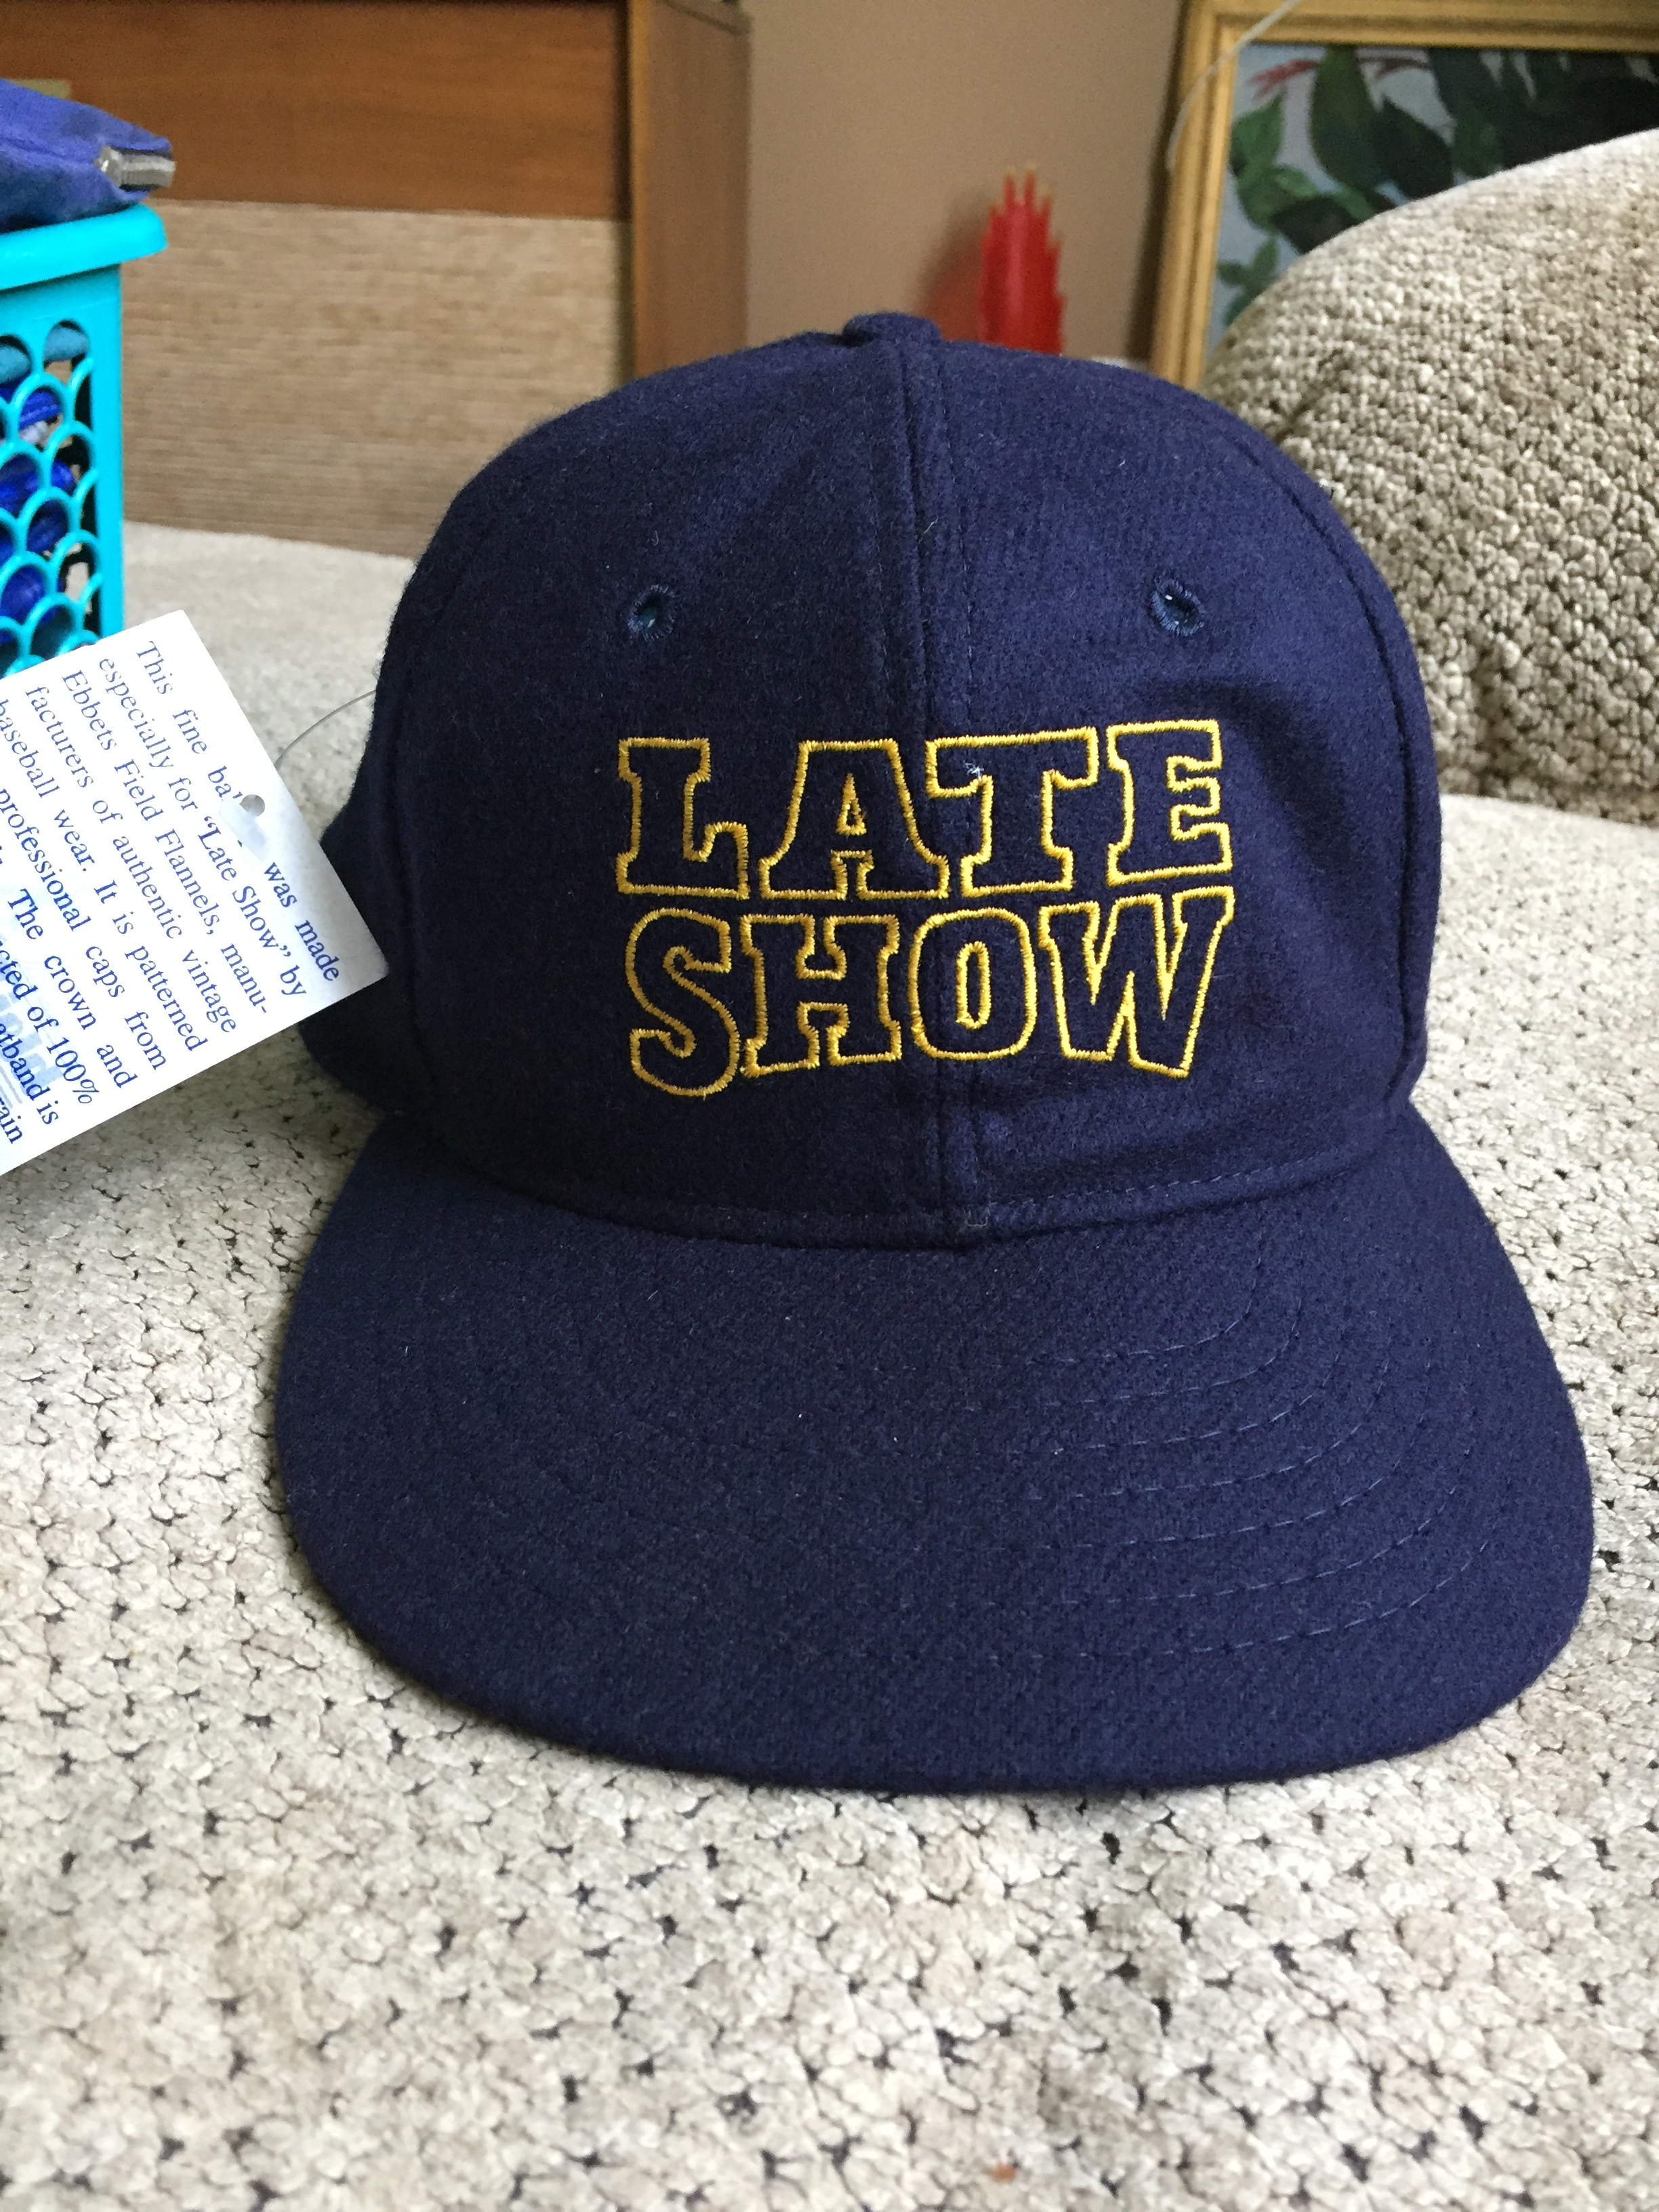 New with tags size 7-1/4.  Wool flannel 50s style baseball cap with DAVID LETTERMAN's Logo.  Really nice cap!